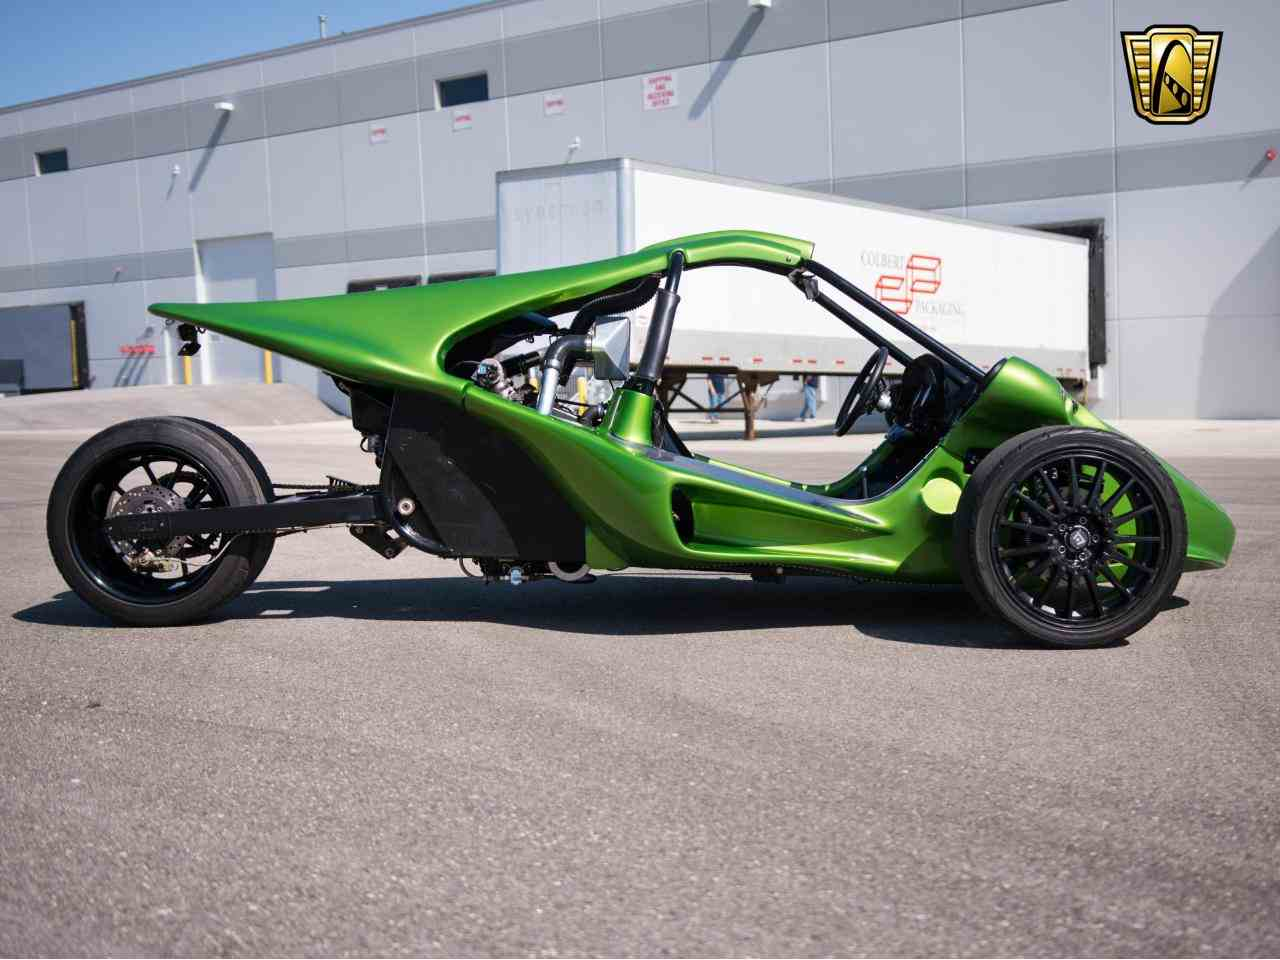 Large Picture of 2008 T-Rex Replica located in Kenosha Wisconsin - $44,595.00 Offered by Gateway Classic Cars - Milwaukee - L7NA